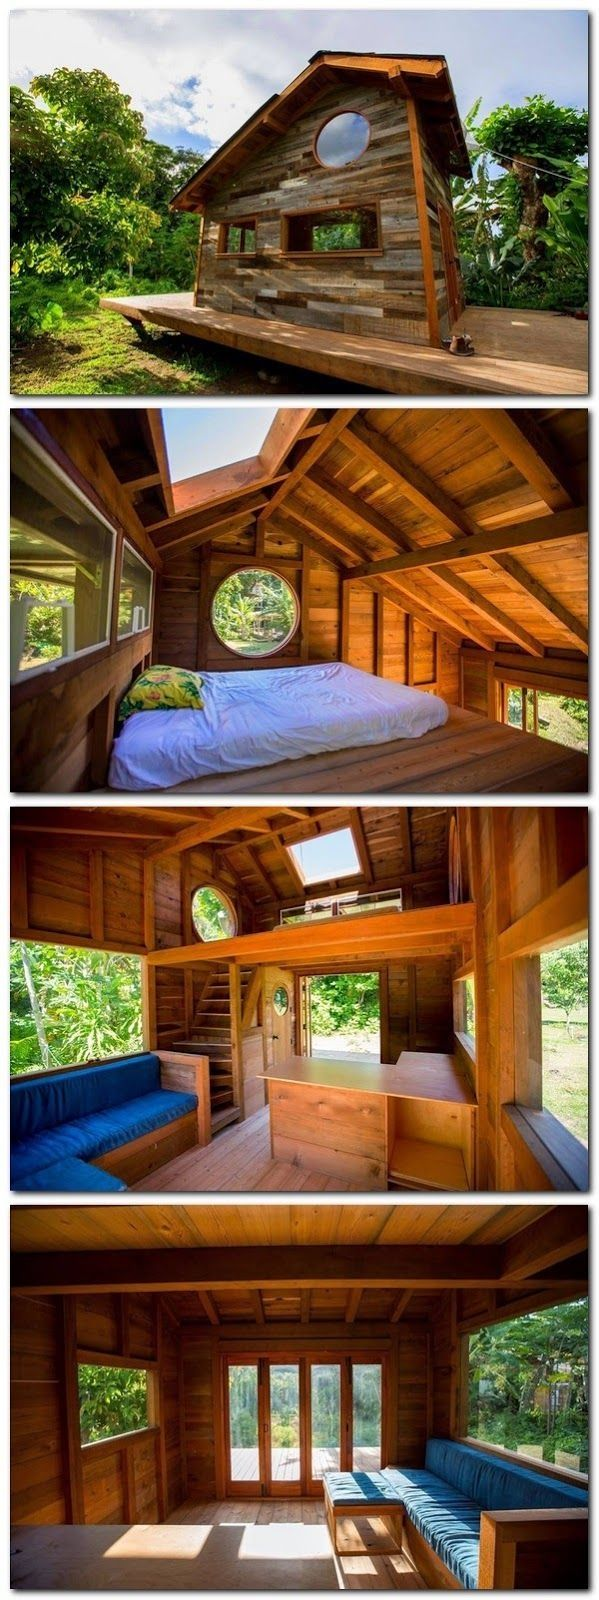 Tiny House And Small Space Living | I Just Love Tiny Houses! by milagros